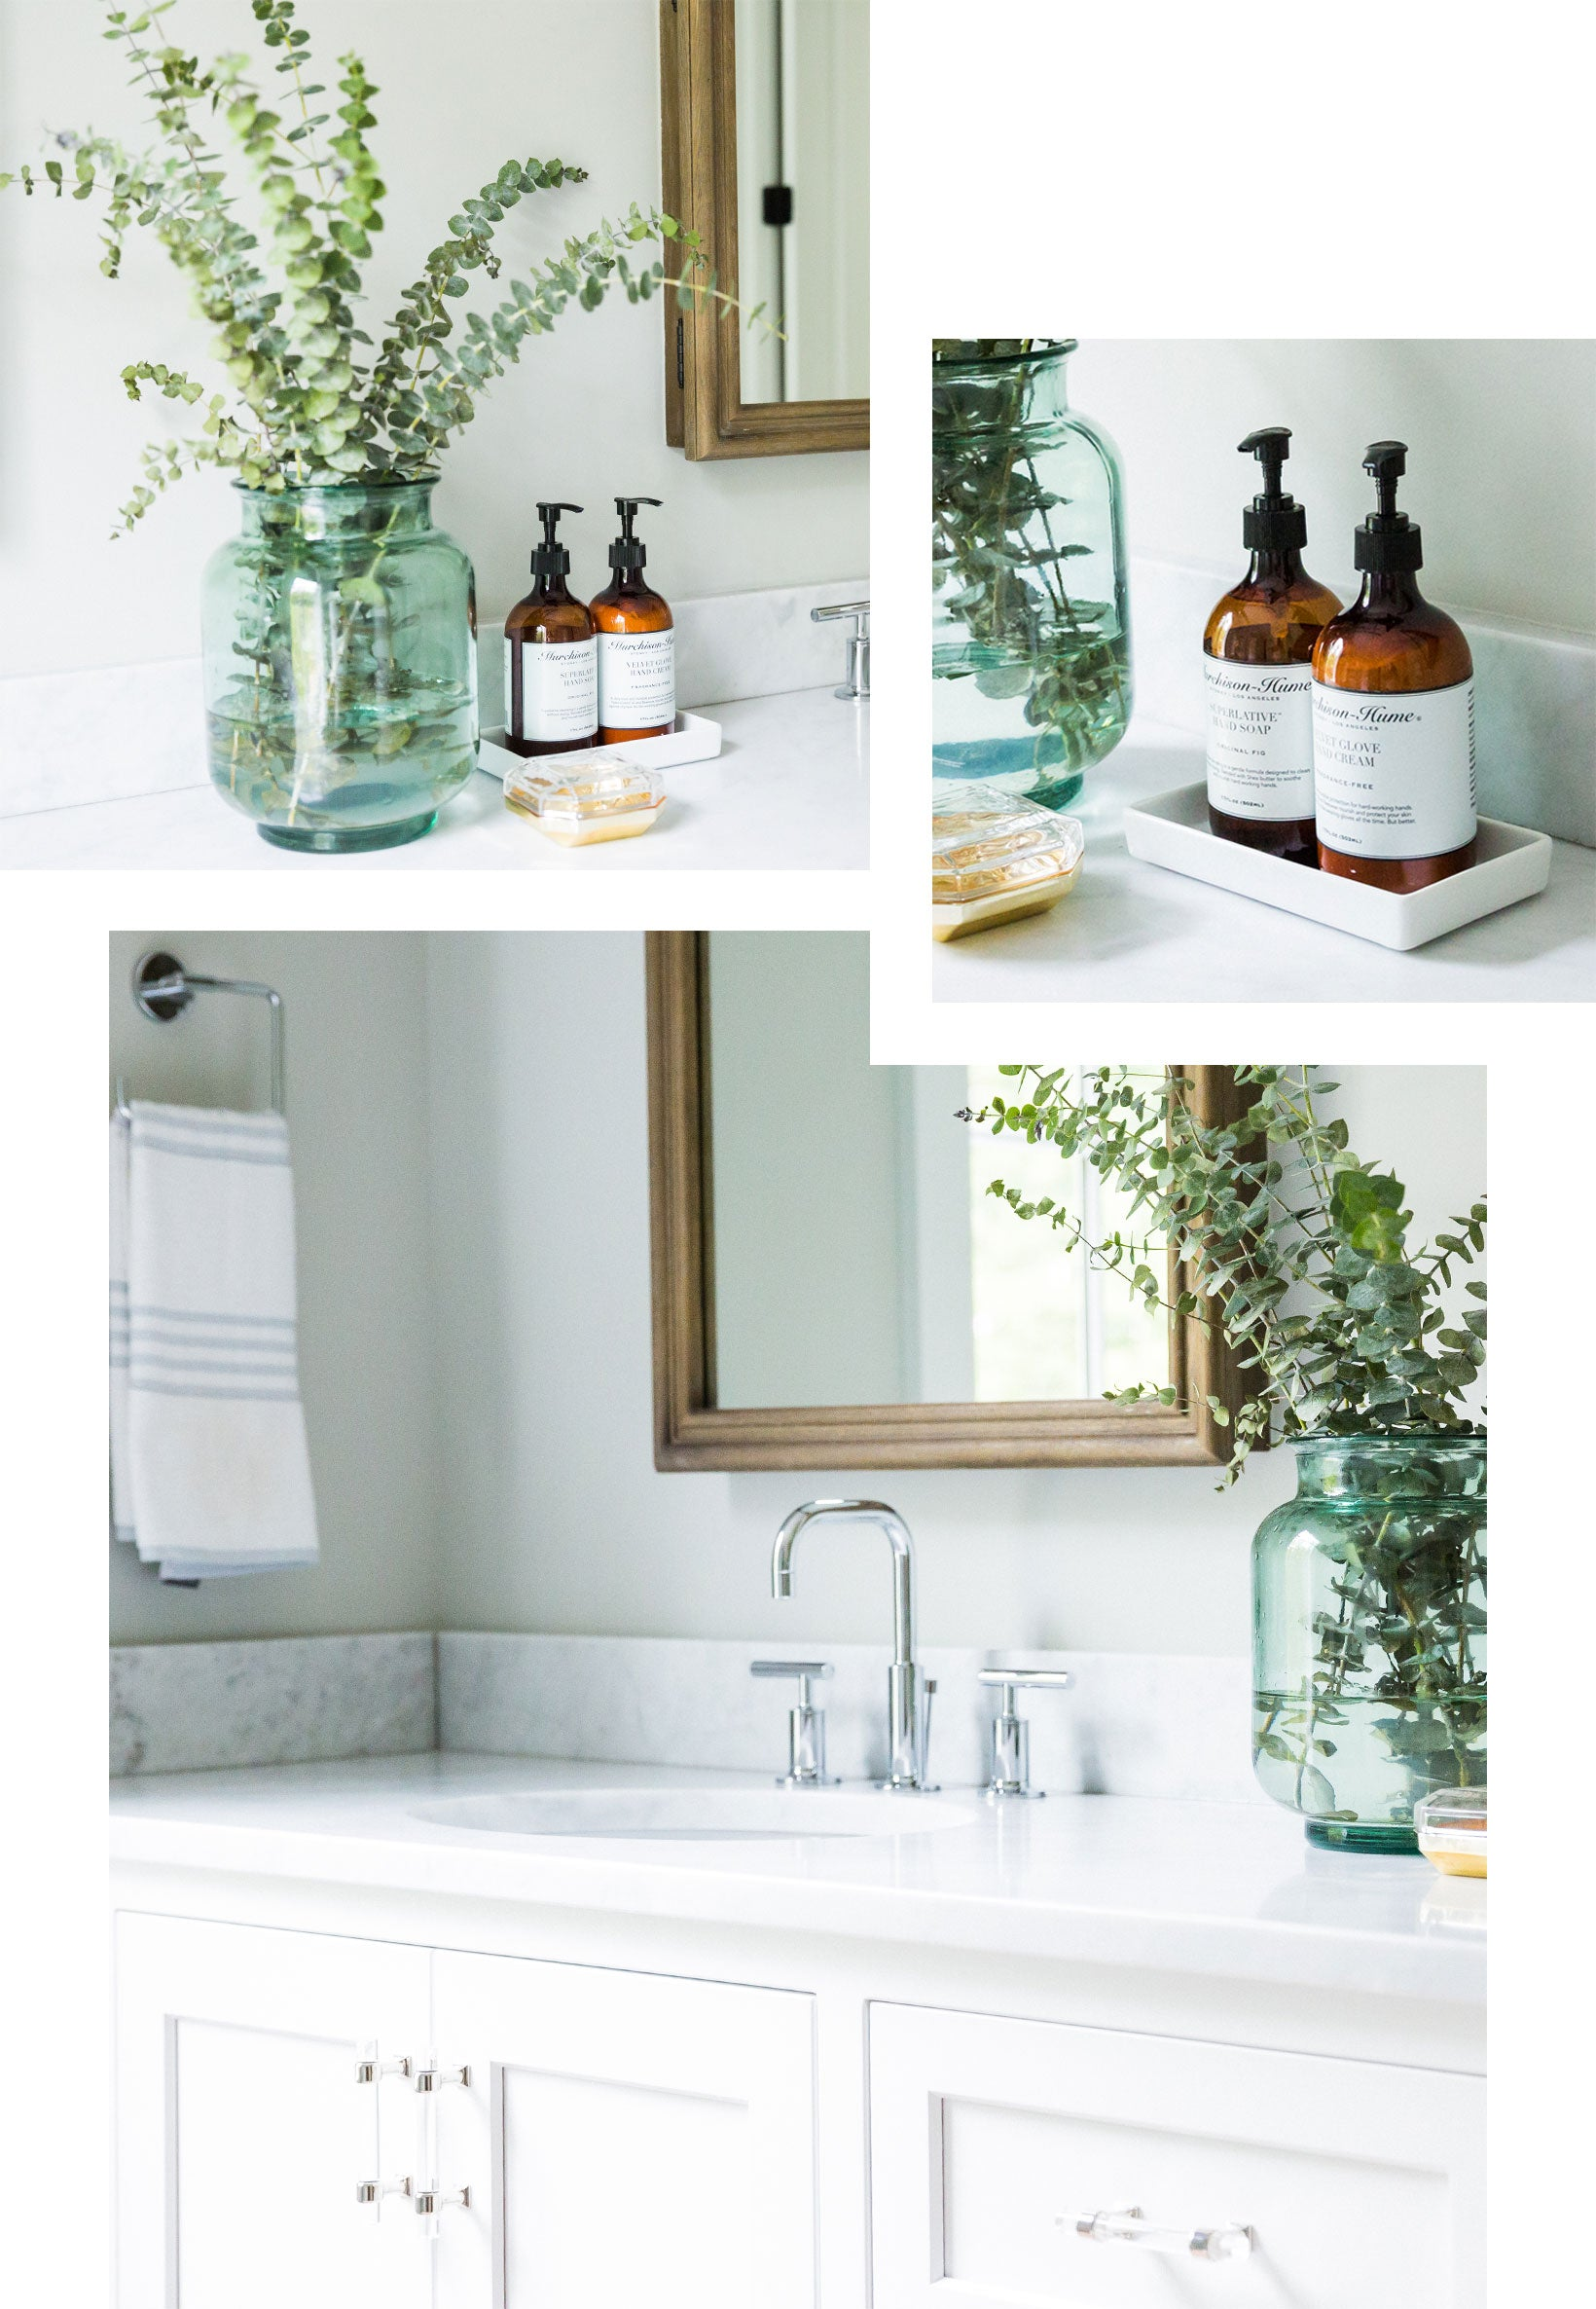 Incredible Ask Trove Creating A Bathroom You Love Trove Warehouse Download Free Architecture Designs Embacsunscenecom